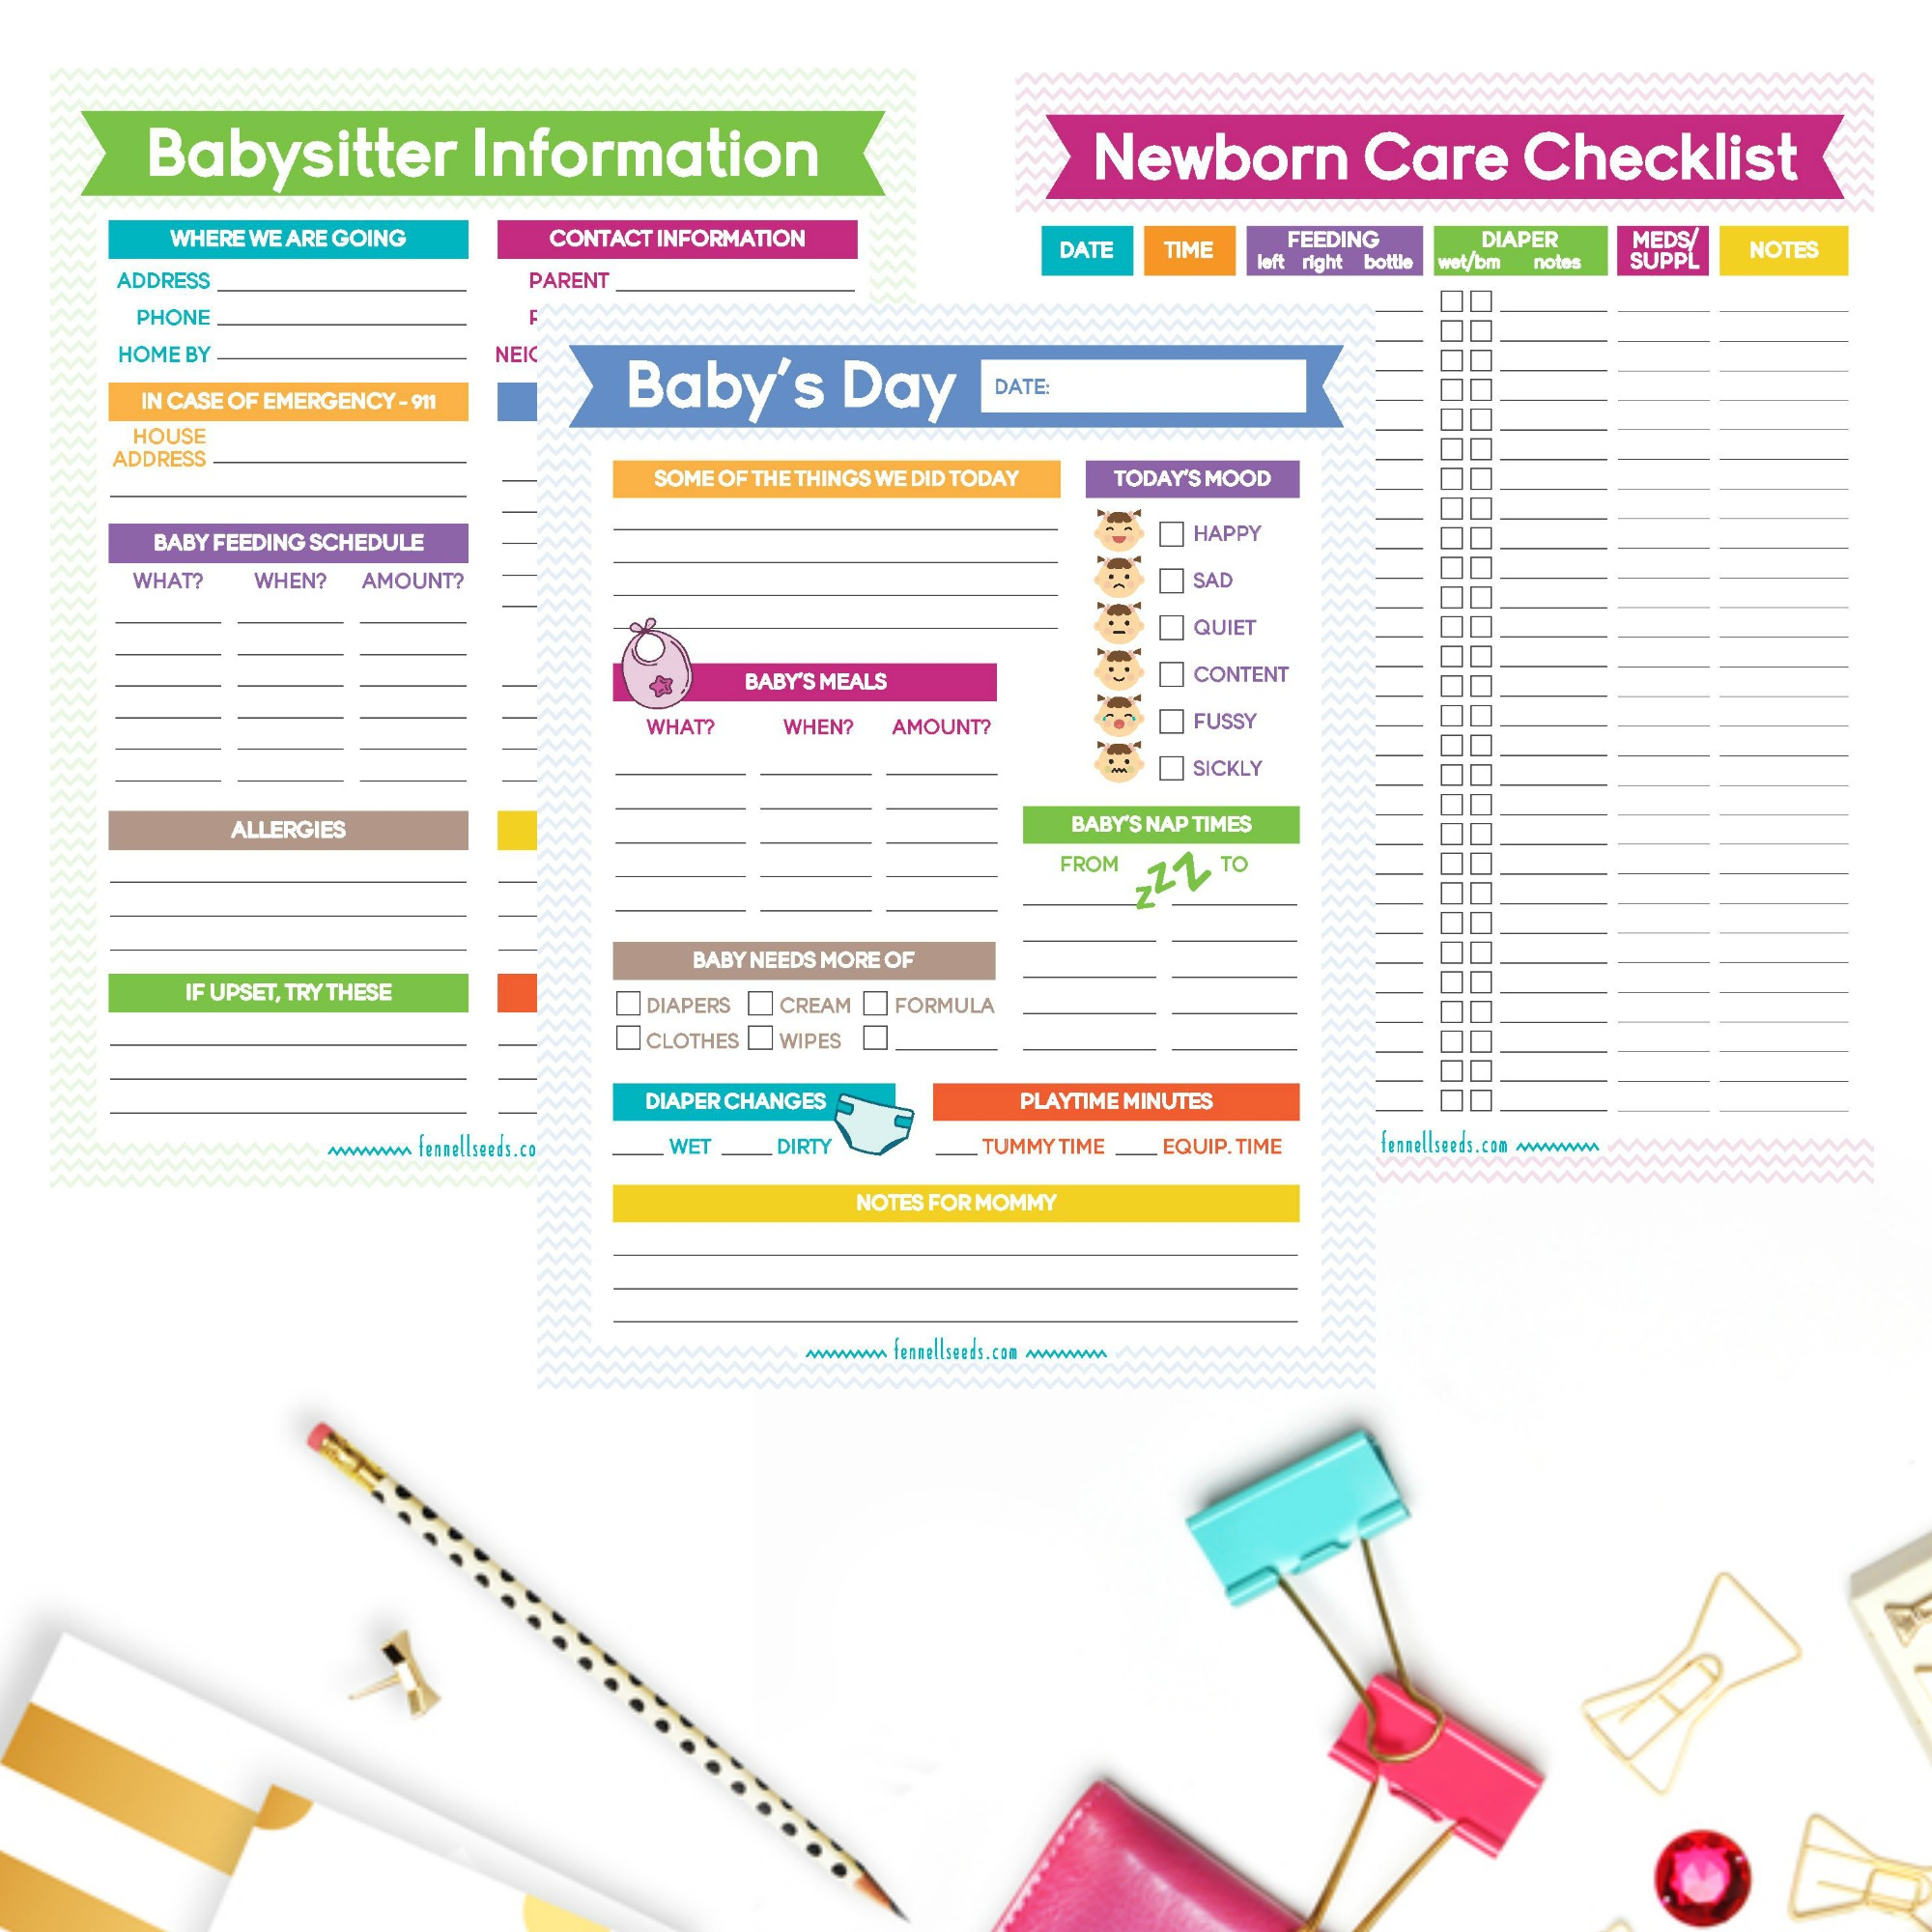 Newborn Printables | Organize your new baby's information with these 6 printables. Print as many as you would like. | Newborn Checklist | Babysitter Information | Baby's Day Information